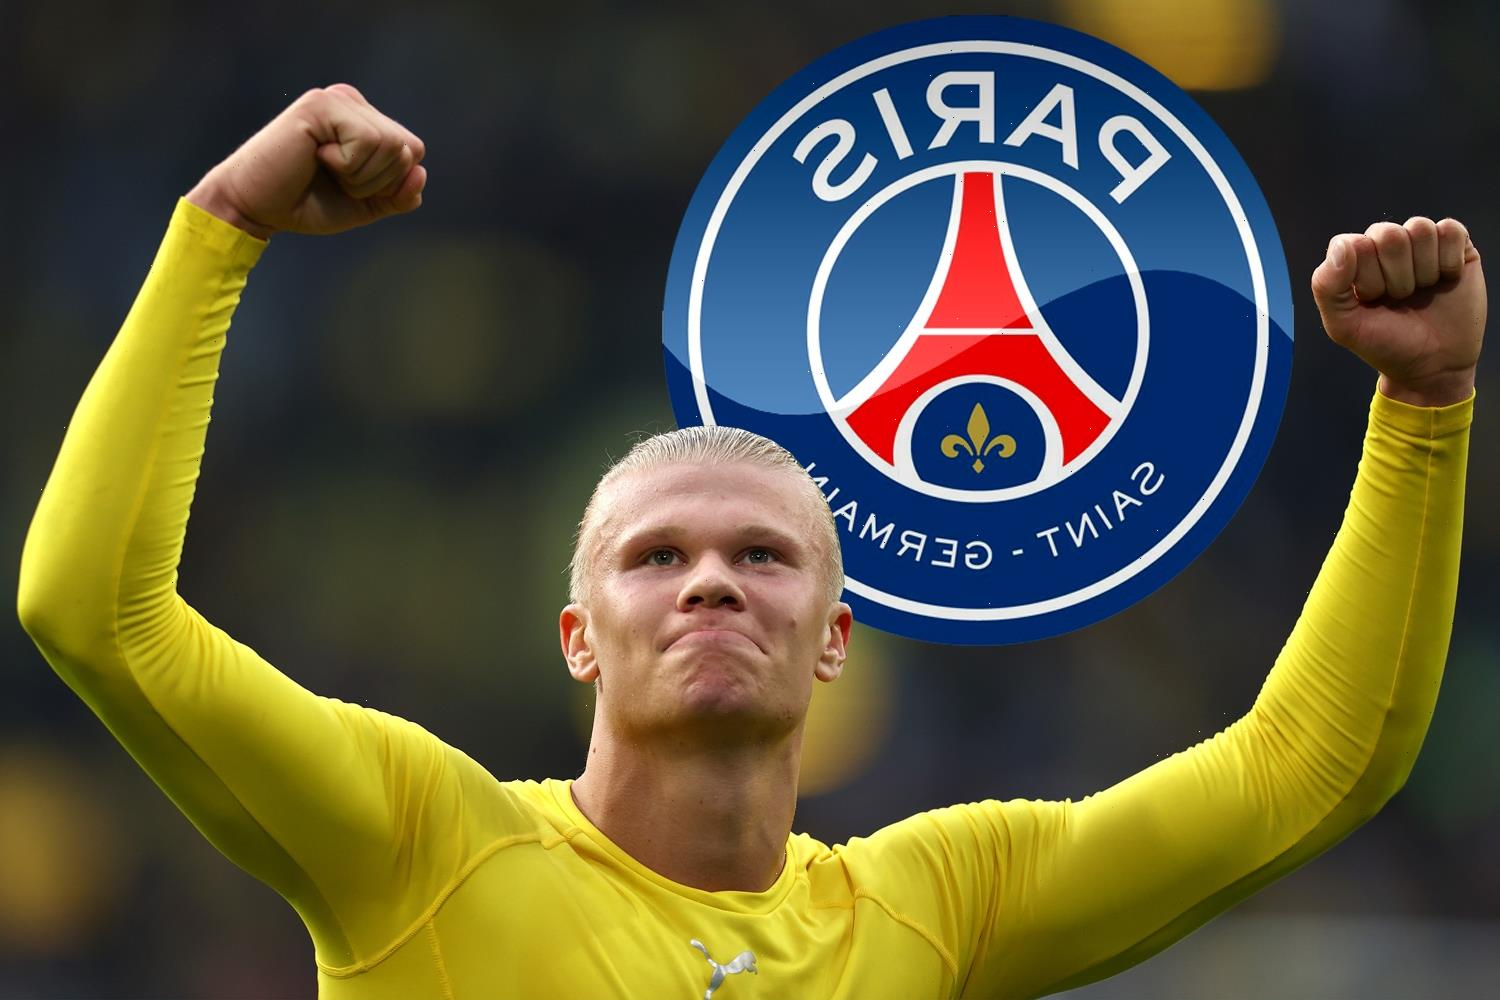 Man Utd joined by PSG in Erling Haaland transfer race with Lewandowski 'back-up option if Mbappe leaves for Real Madrid'